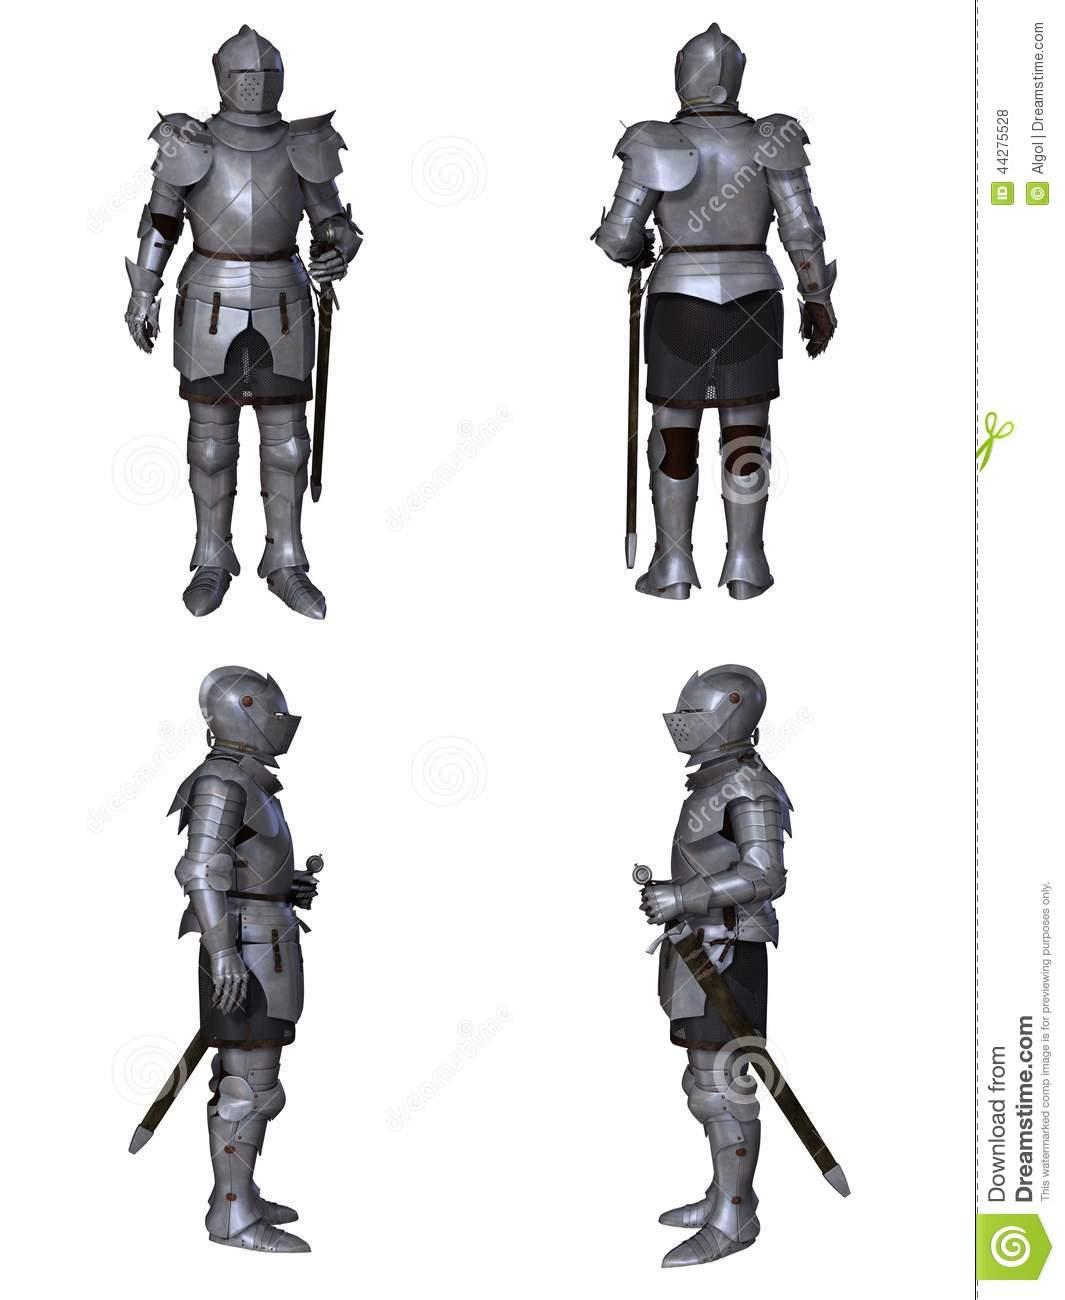 How To Draw A Sword as well Stock Illustration Medieval Knight Fantasy Character Set Milanese Illustration Wearing Th Century Armour Four Views D Digitally Rendered Image44275528 additionally Russian Medieval Warrior 111361199 as well 150 Free Vintage Vector Medieval Heraldry Graphics Vector 4884 furthermore Adelais Armored Horse 86920317. on medieval armor